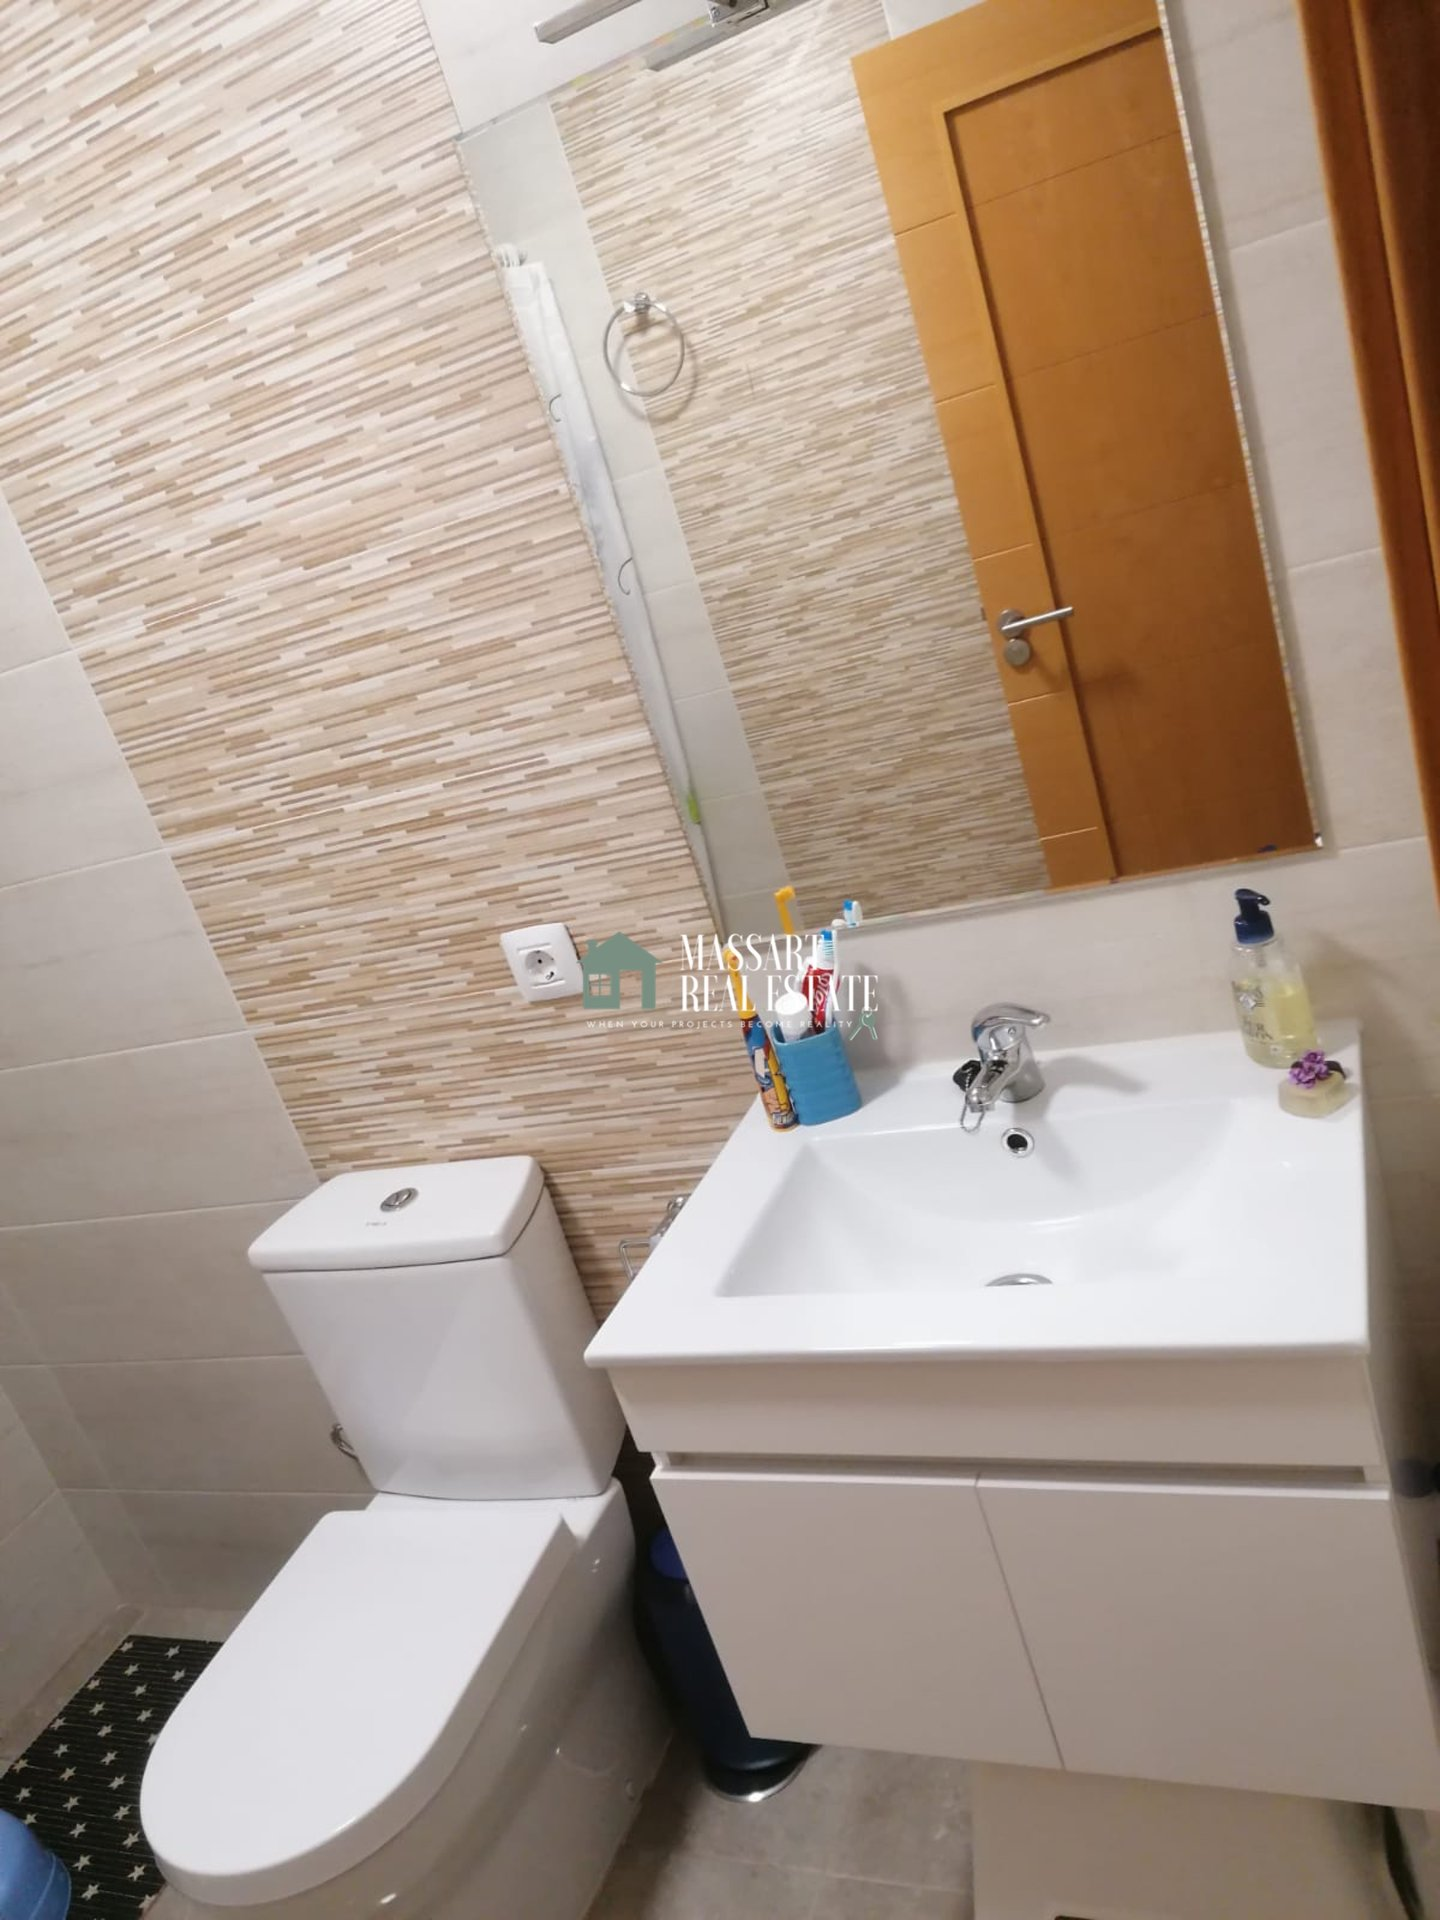 Fully furnished apartment located in a quiet area of Aguadulce (Guía de Isora).